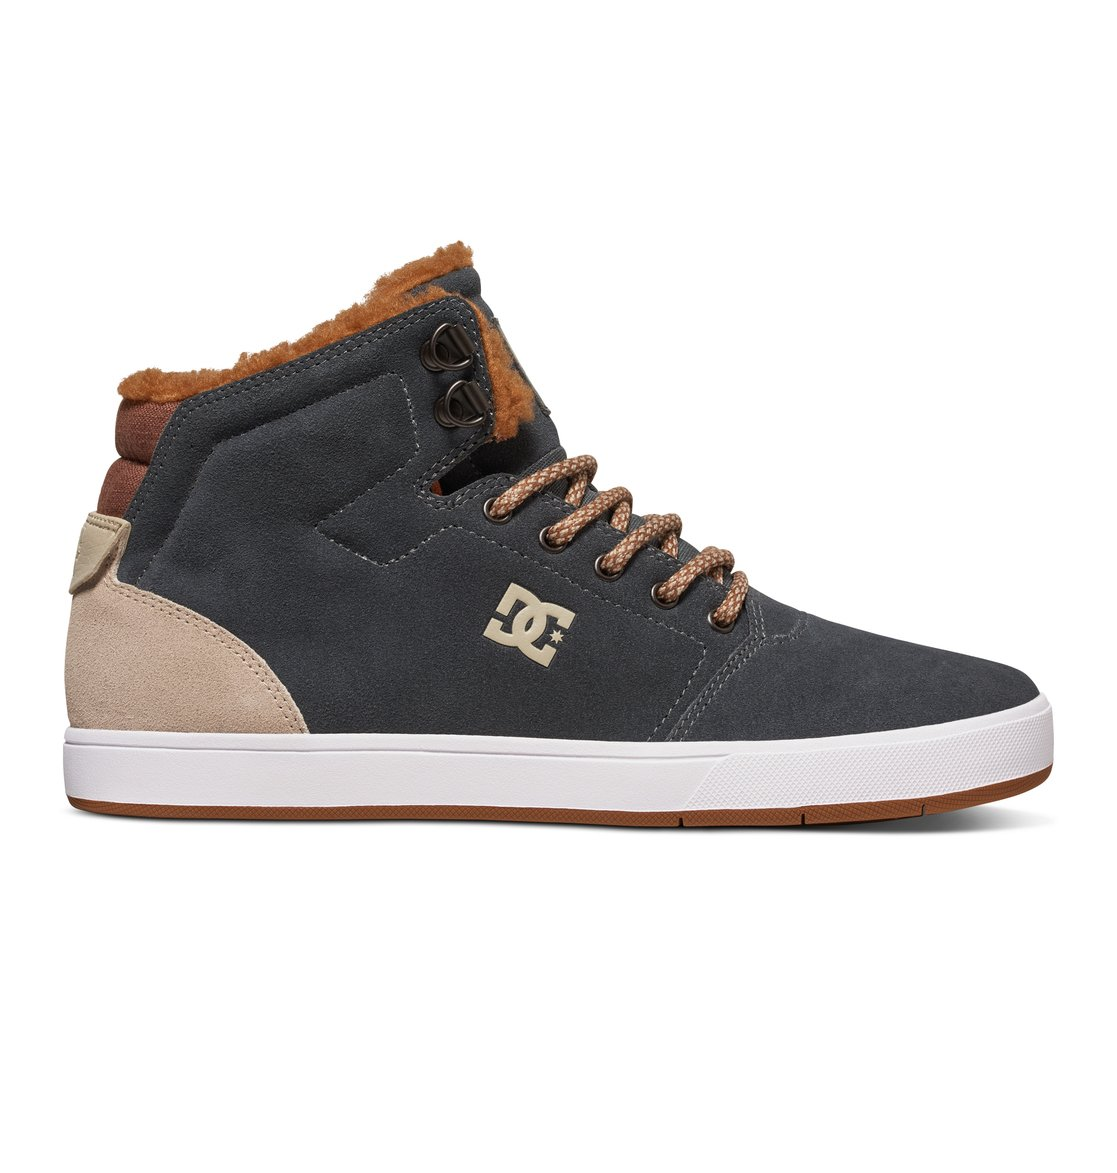 Chaussure Dc Shoes Montante